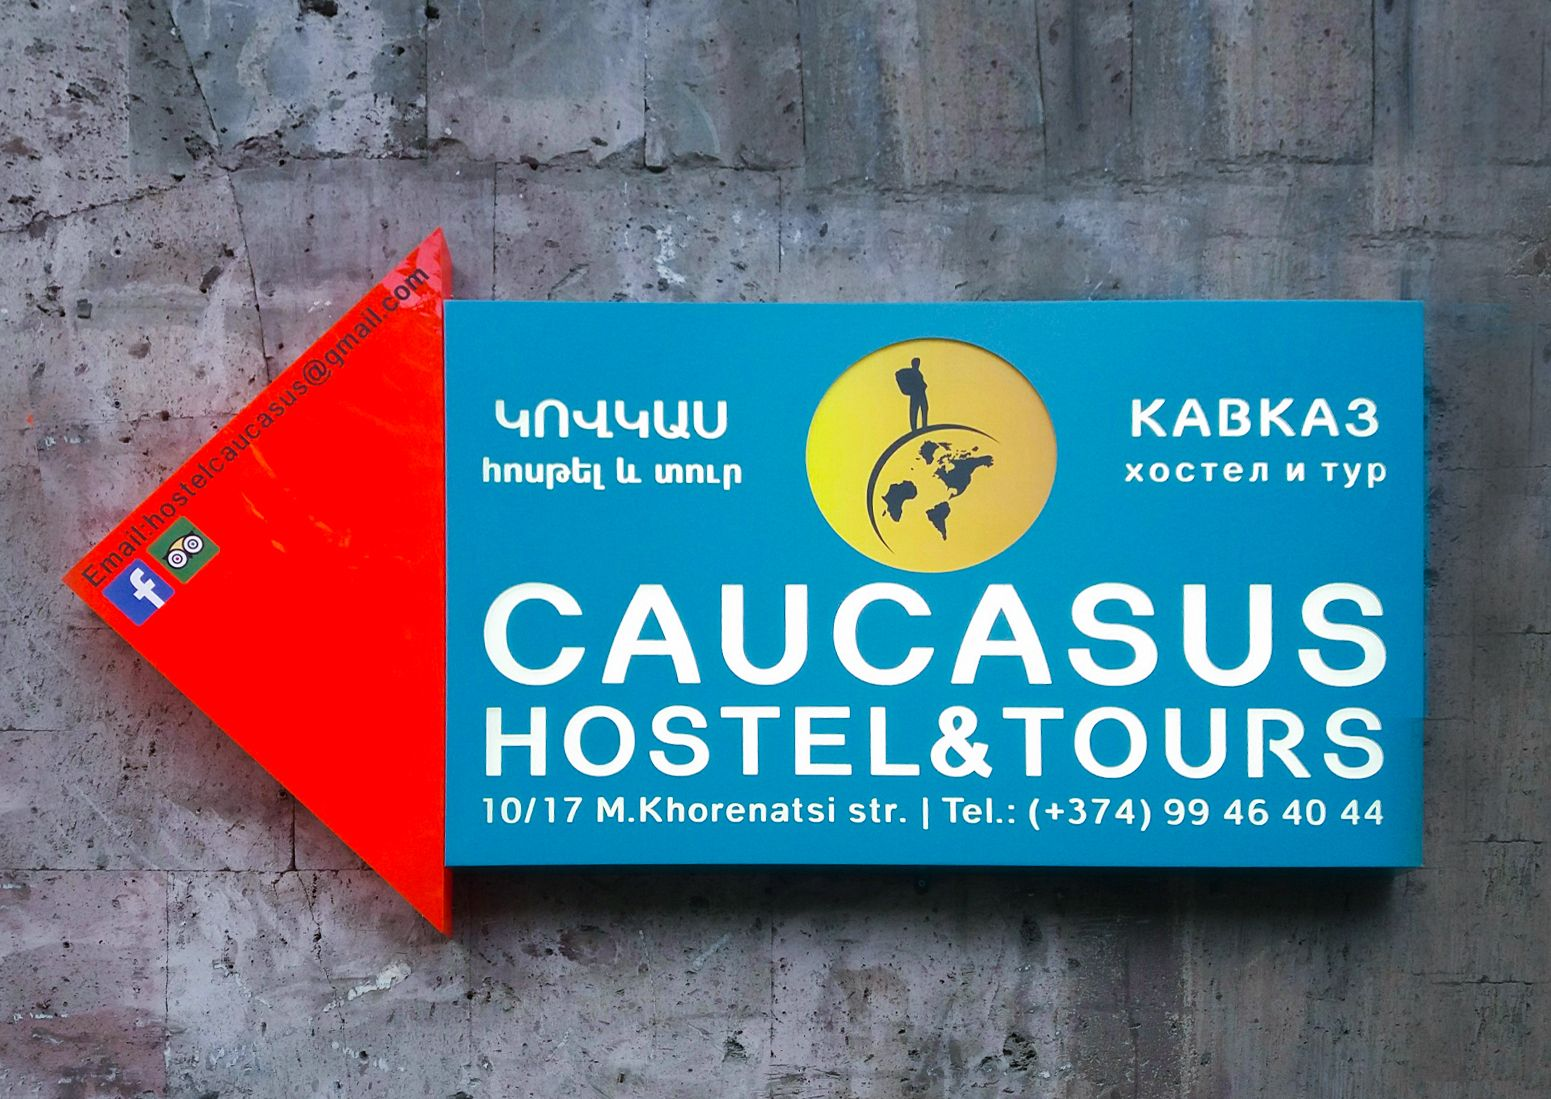 Caucasus Hostel & Tours custom light box with a directional arrow made of aluminum and acrylic for customer wayfinding